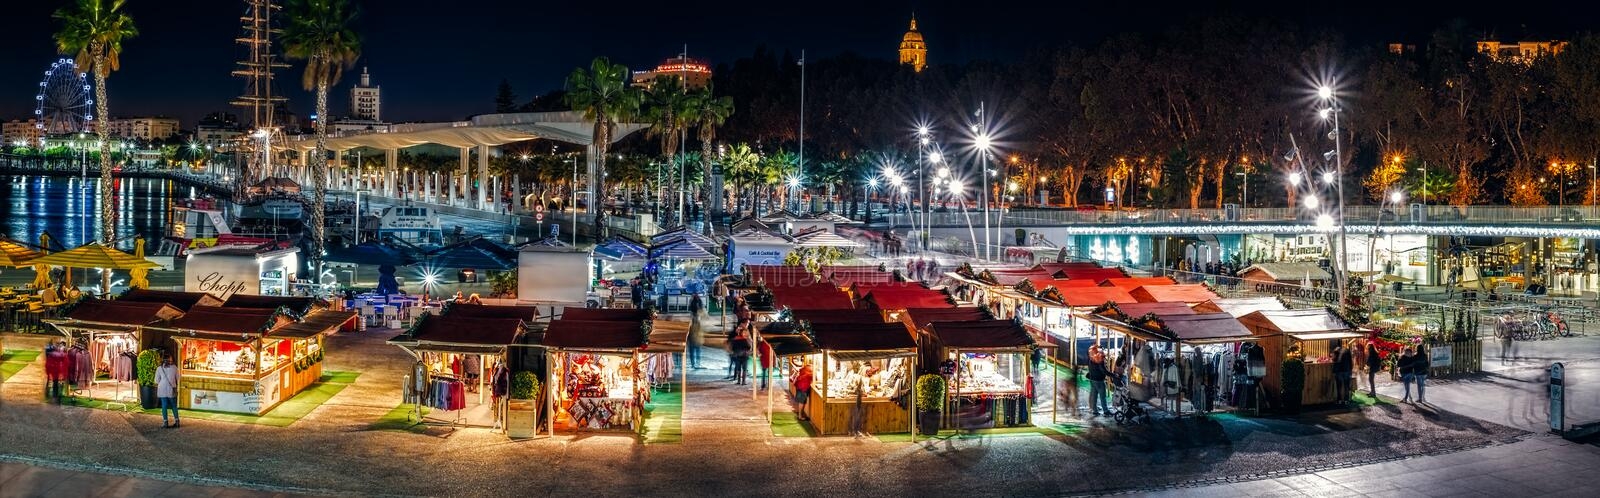 Christmas fair in the night royalty free stock images